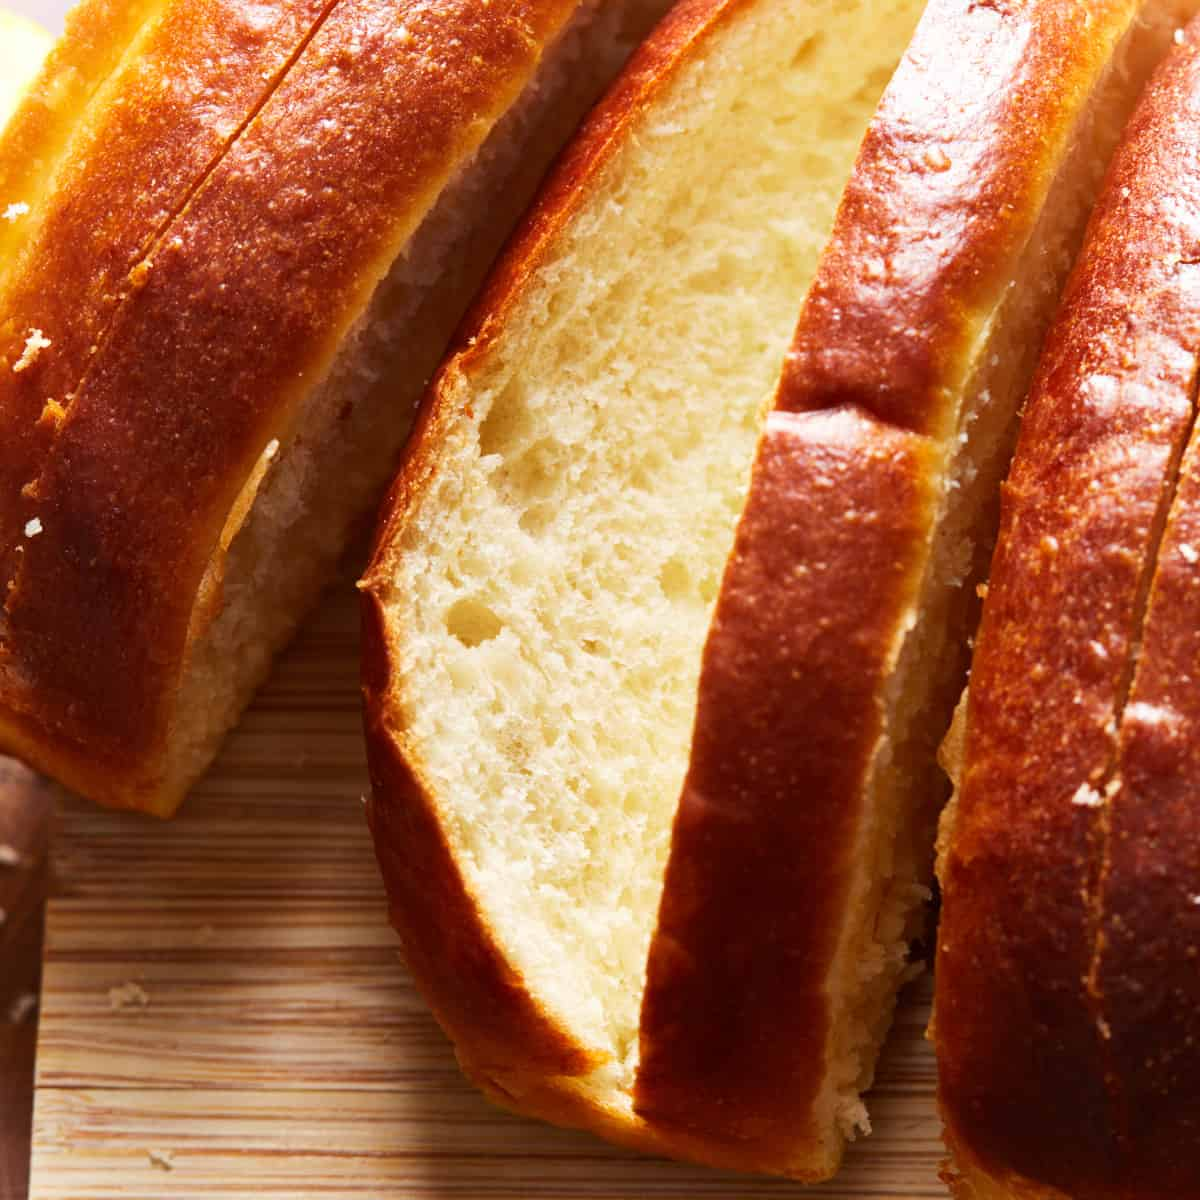 Close up of the texture of the baked and cut rolls